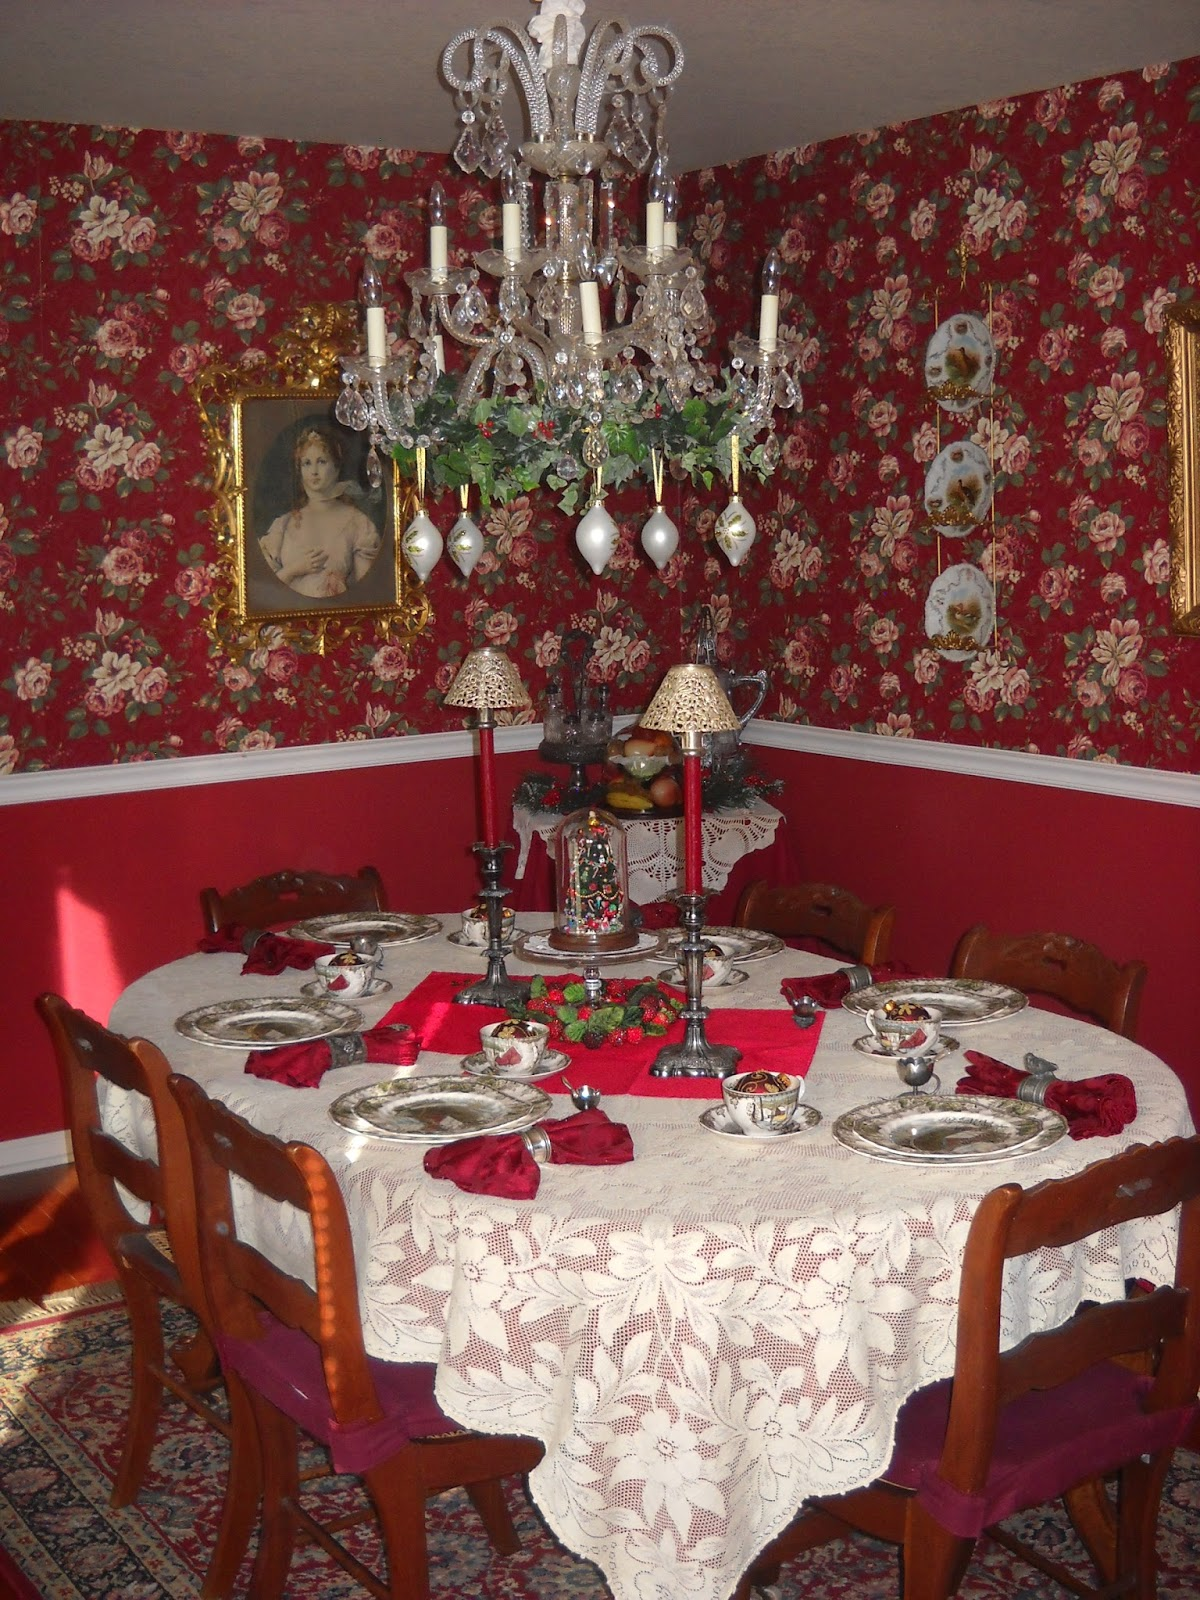 victorian wanna be christmas in the dining room this year i had fun decorating my chandelier which i did not have last christmas